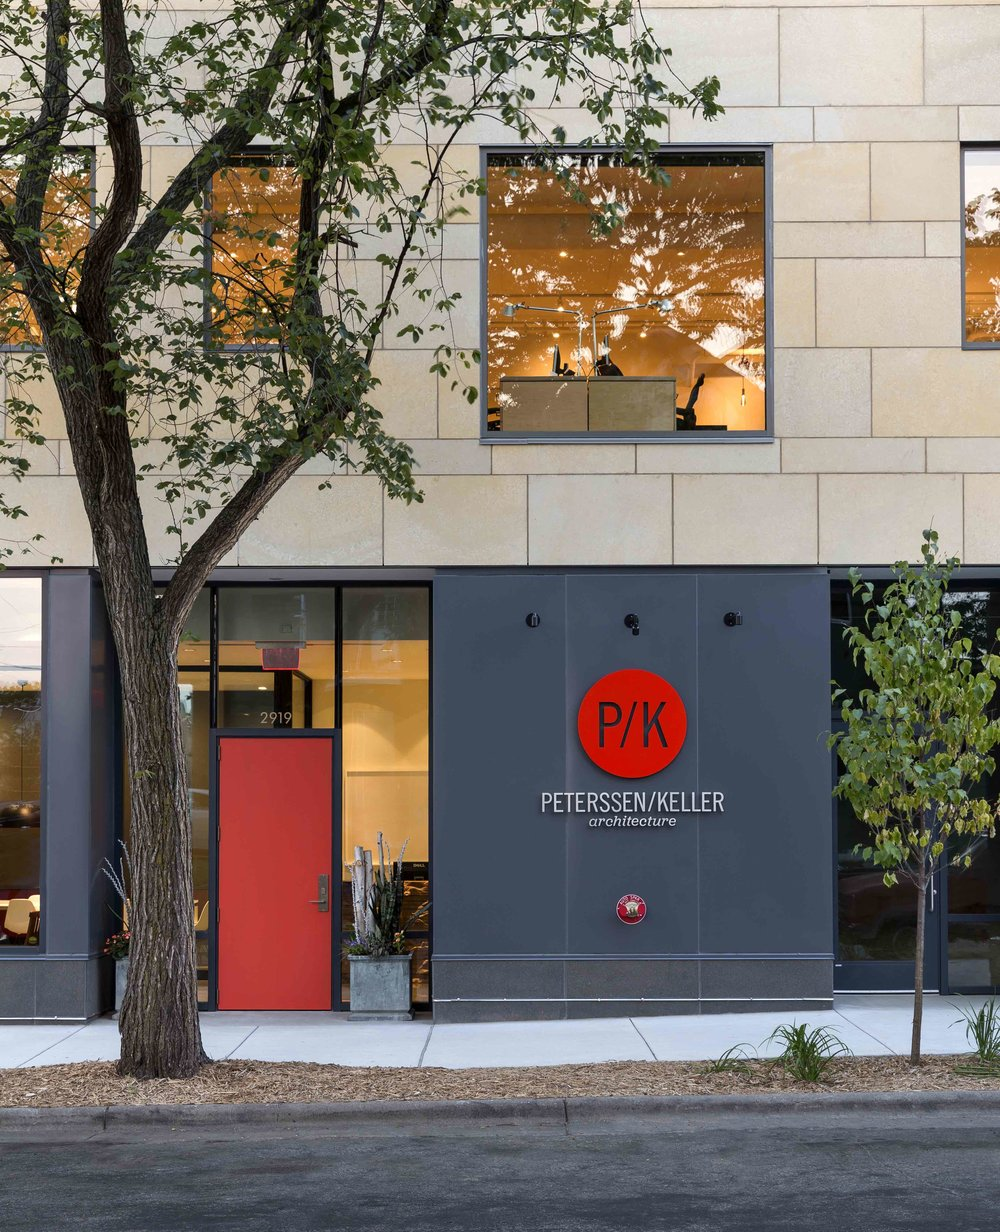 The P/K studio in Uptown, Minneapolis